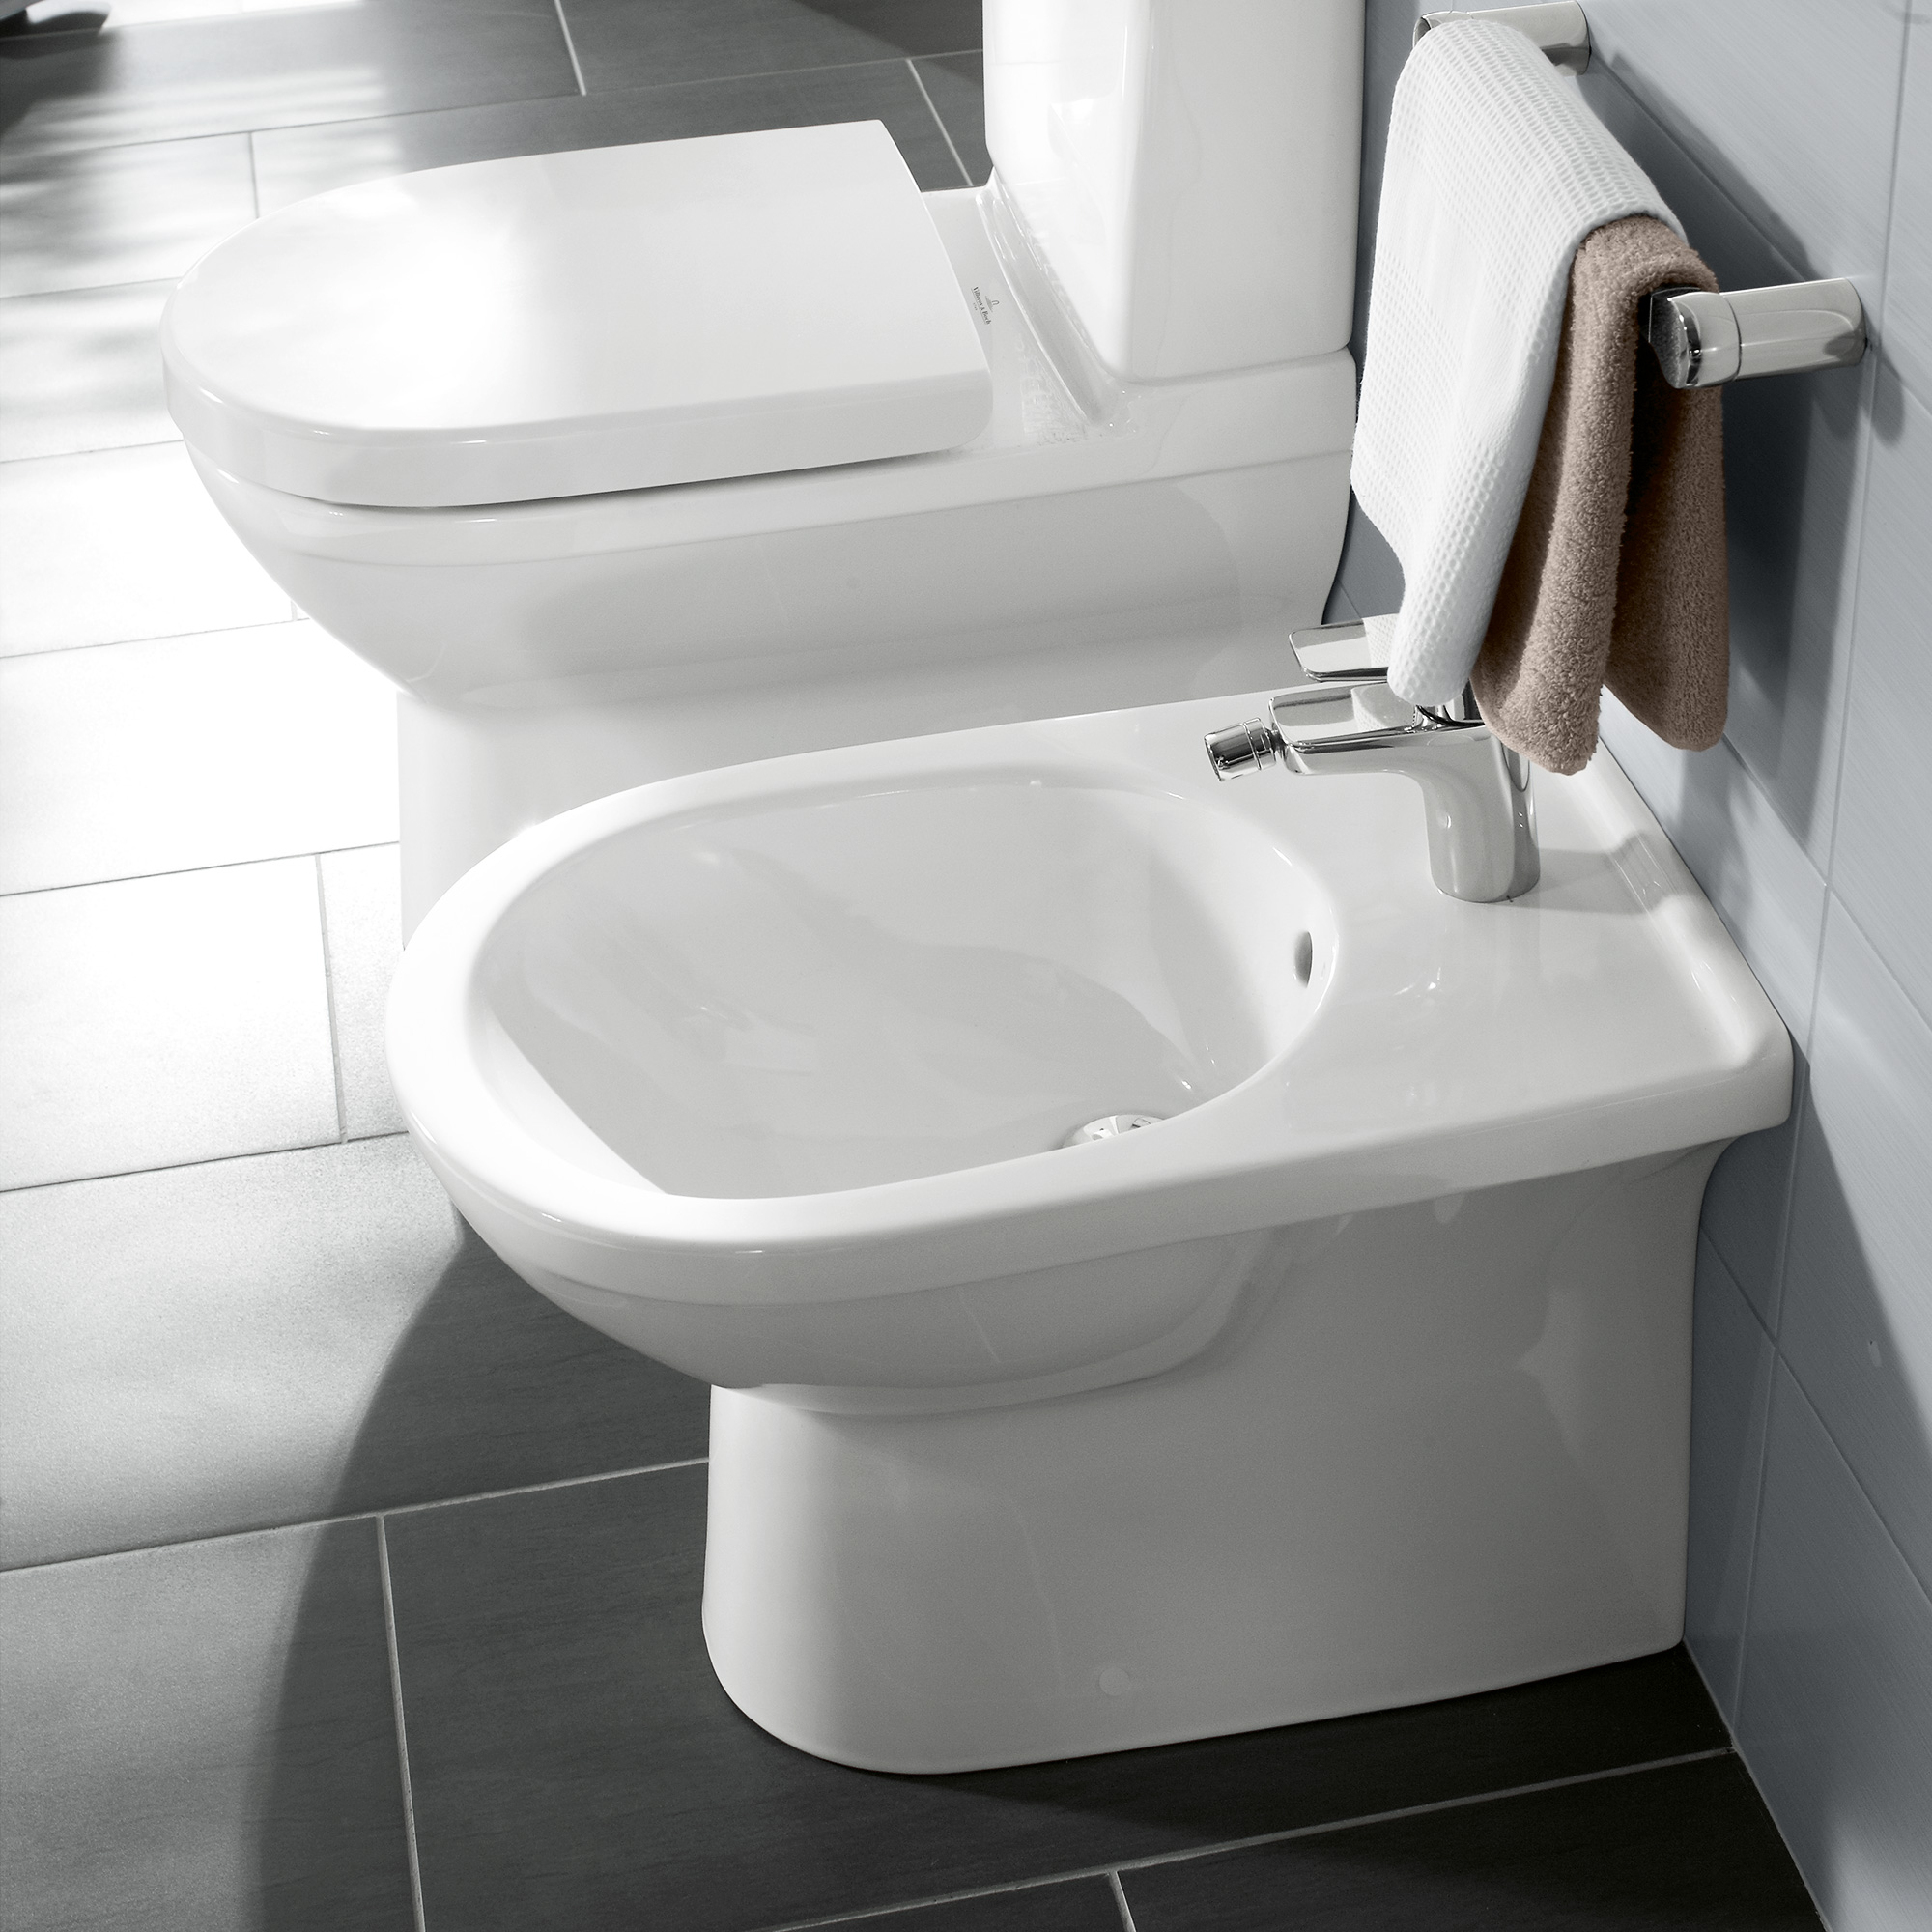 villeroy boch stand bidet l 56 b 36 h 40 cm wei 54610001 reuter onlineshop. Black Bedroom Furniture Sets. Home Design Ideas